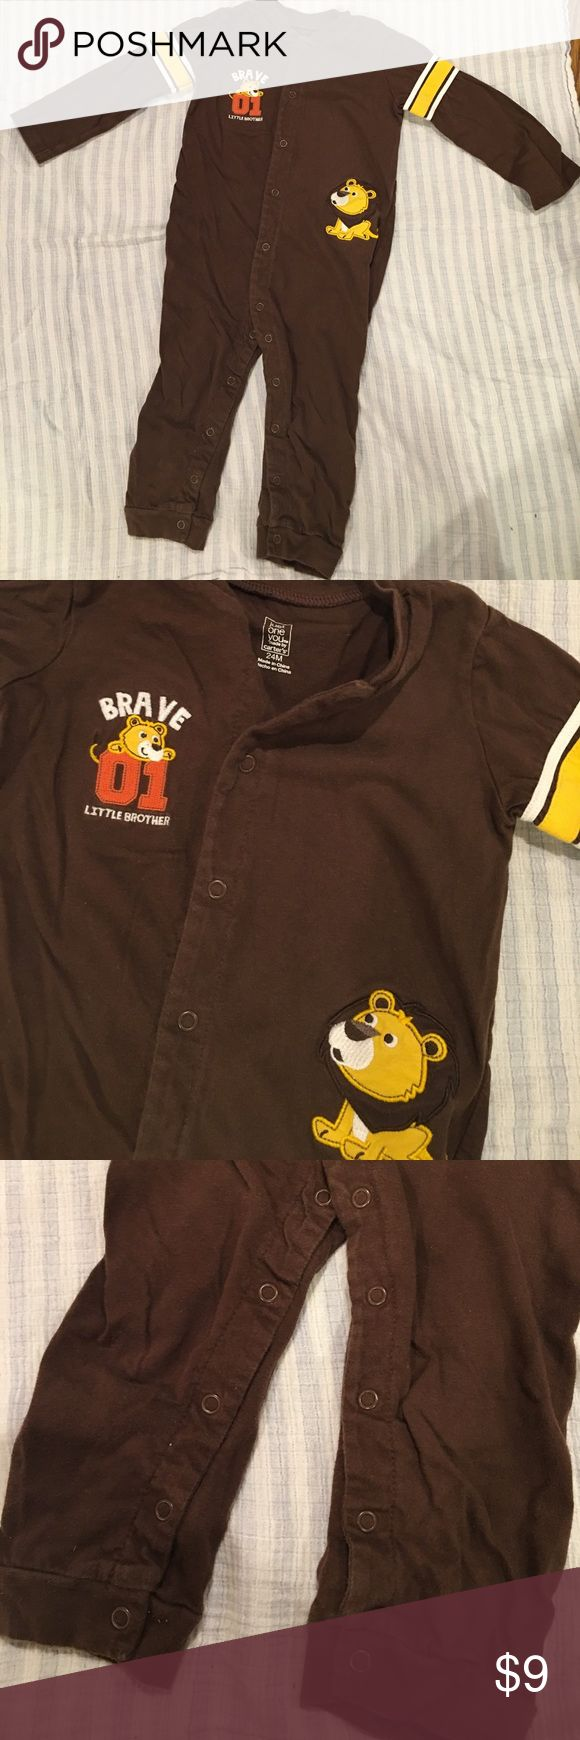 """Carter's little brother brown one-piece 24 months Long sleeve brown one piece says """"brace little brother"""". Snaps up the front, cotton, gently used. Just One You by Carter's 24 months Carter's One Pieces"""